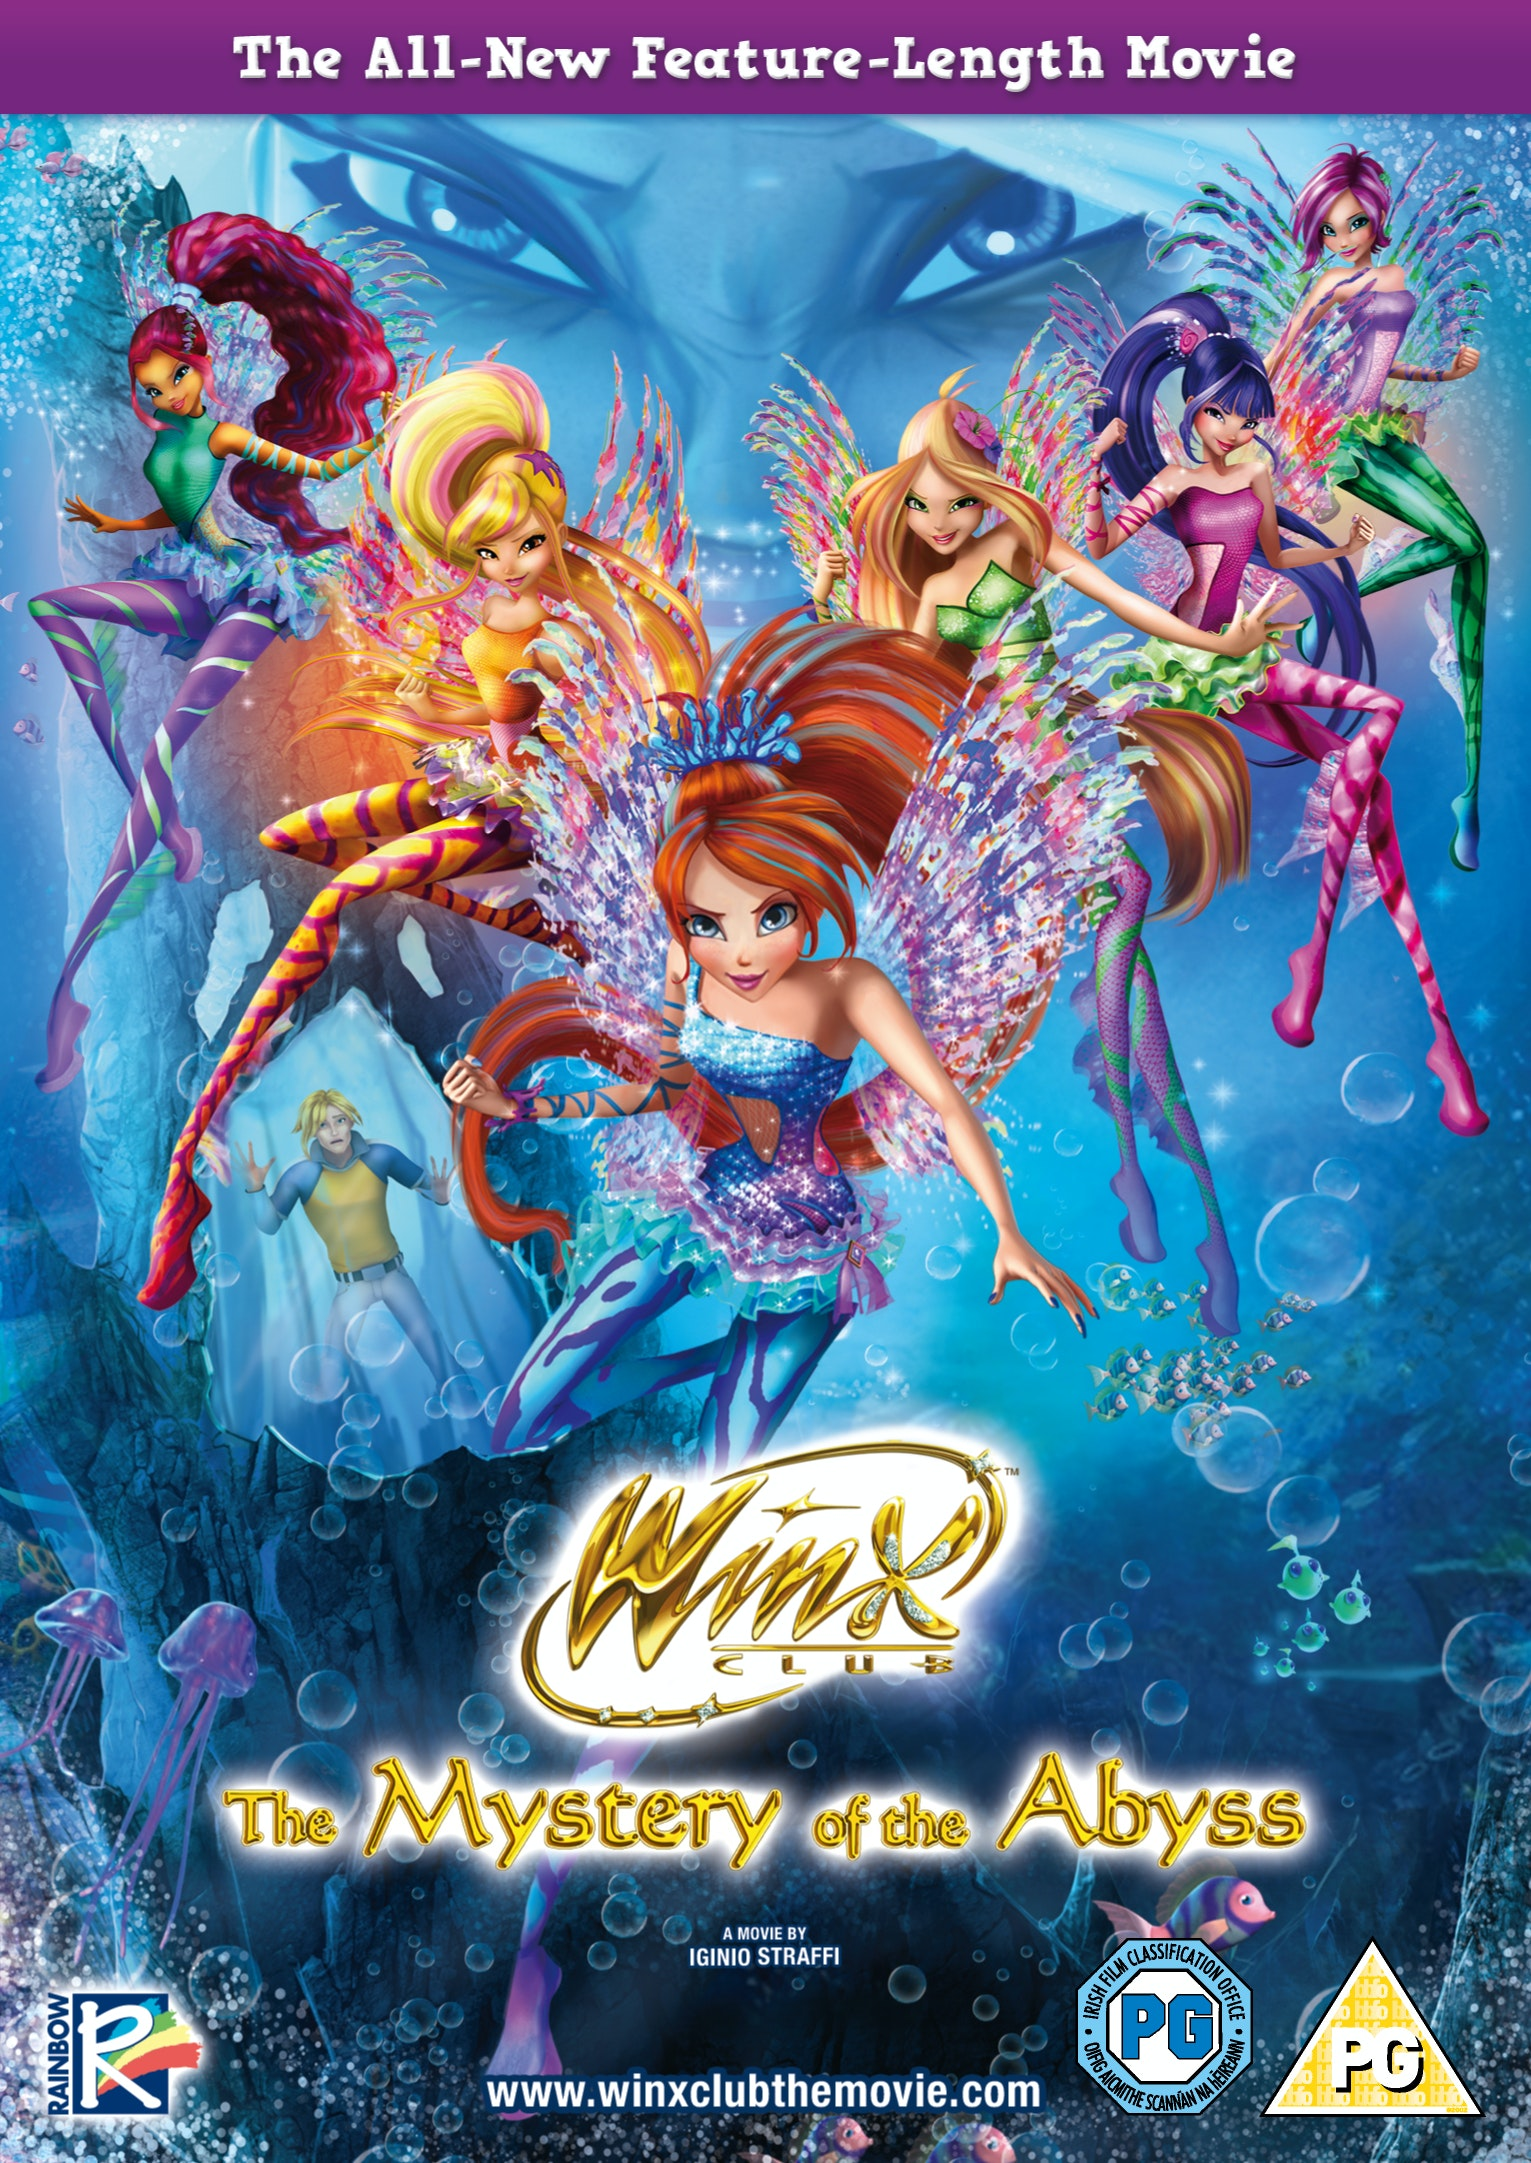 Winx Club: The Mystery of the Abyss DVD sweepstakes